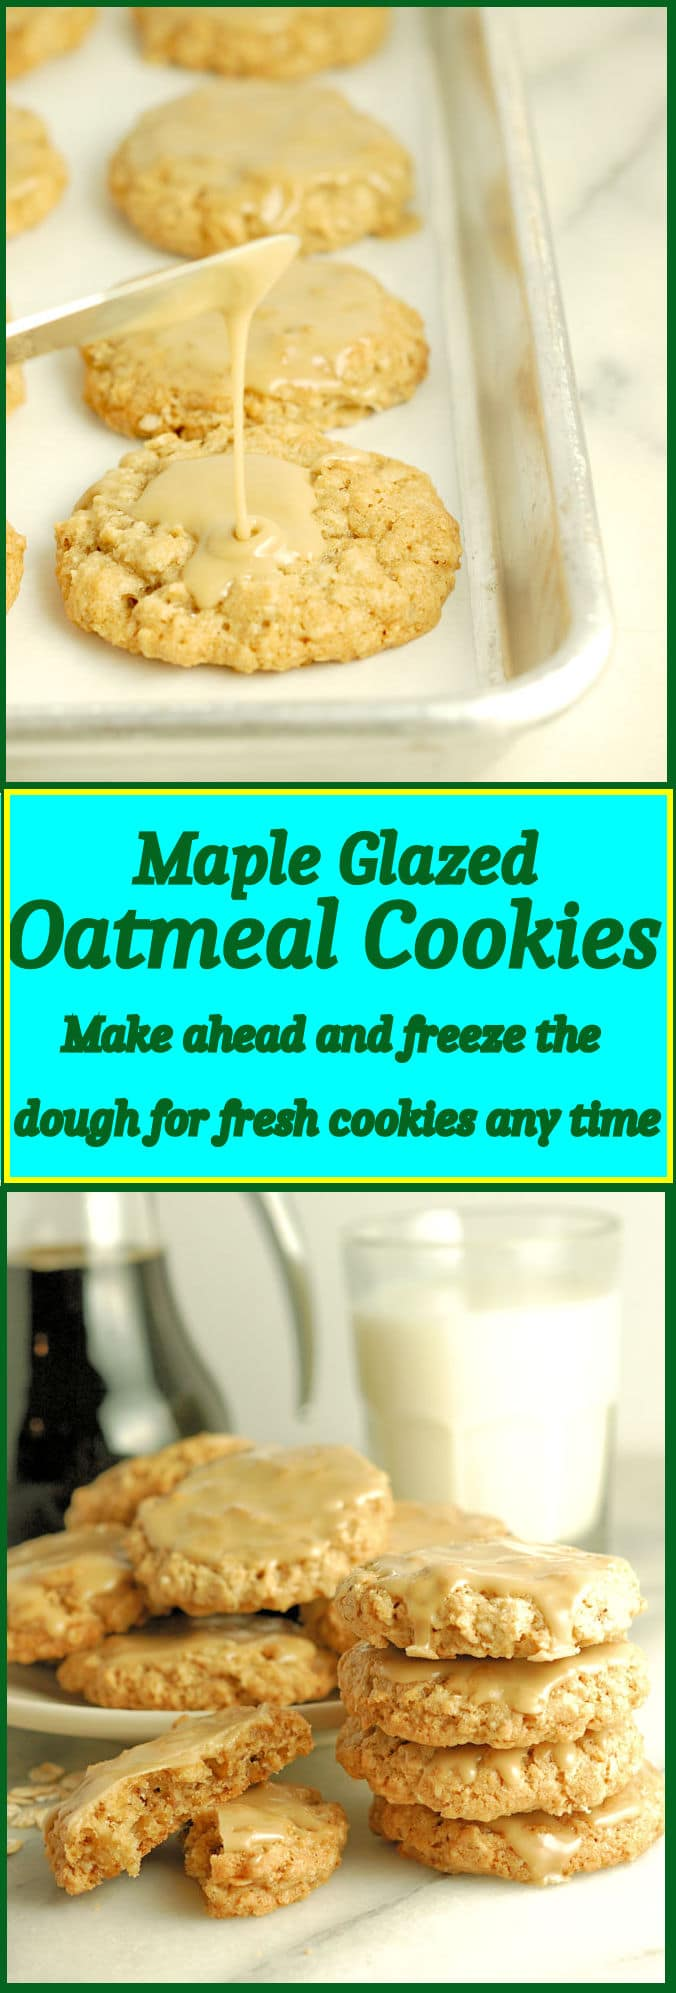 The best chewy oatmeal cookie you'll ever taste - with a thin coating of real Maple Glaze. Make the dough ahead and freeze for fresh cookies any time.